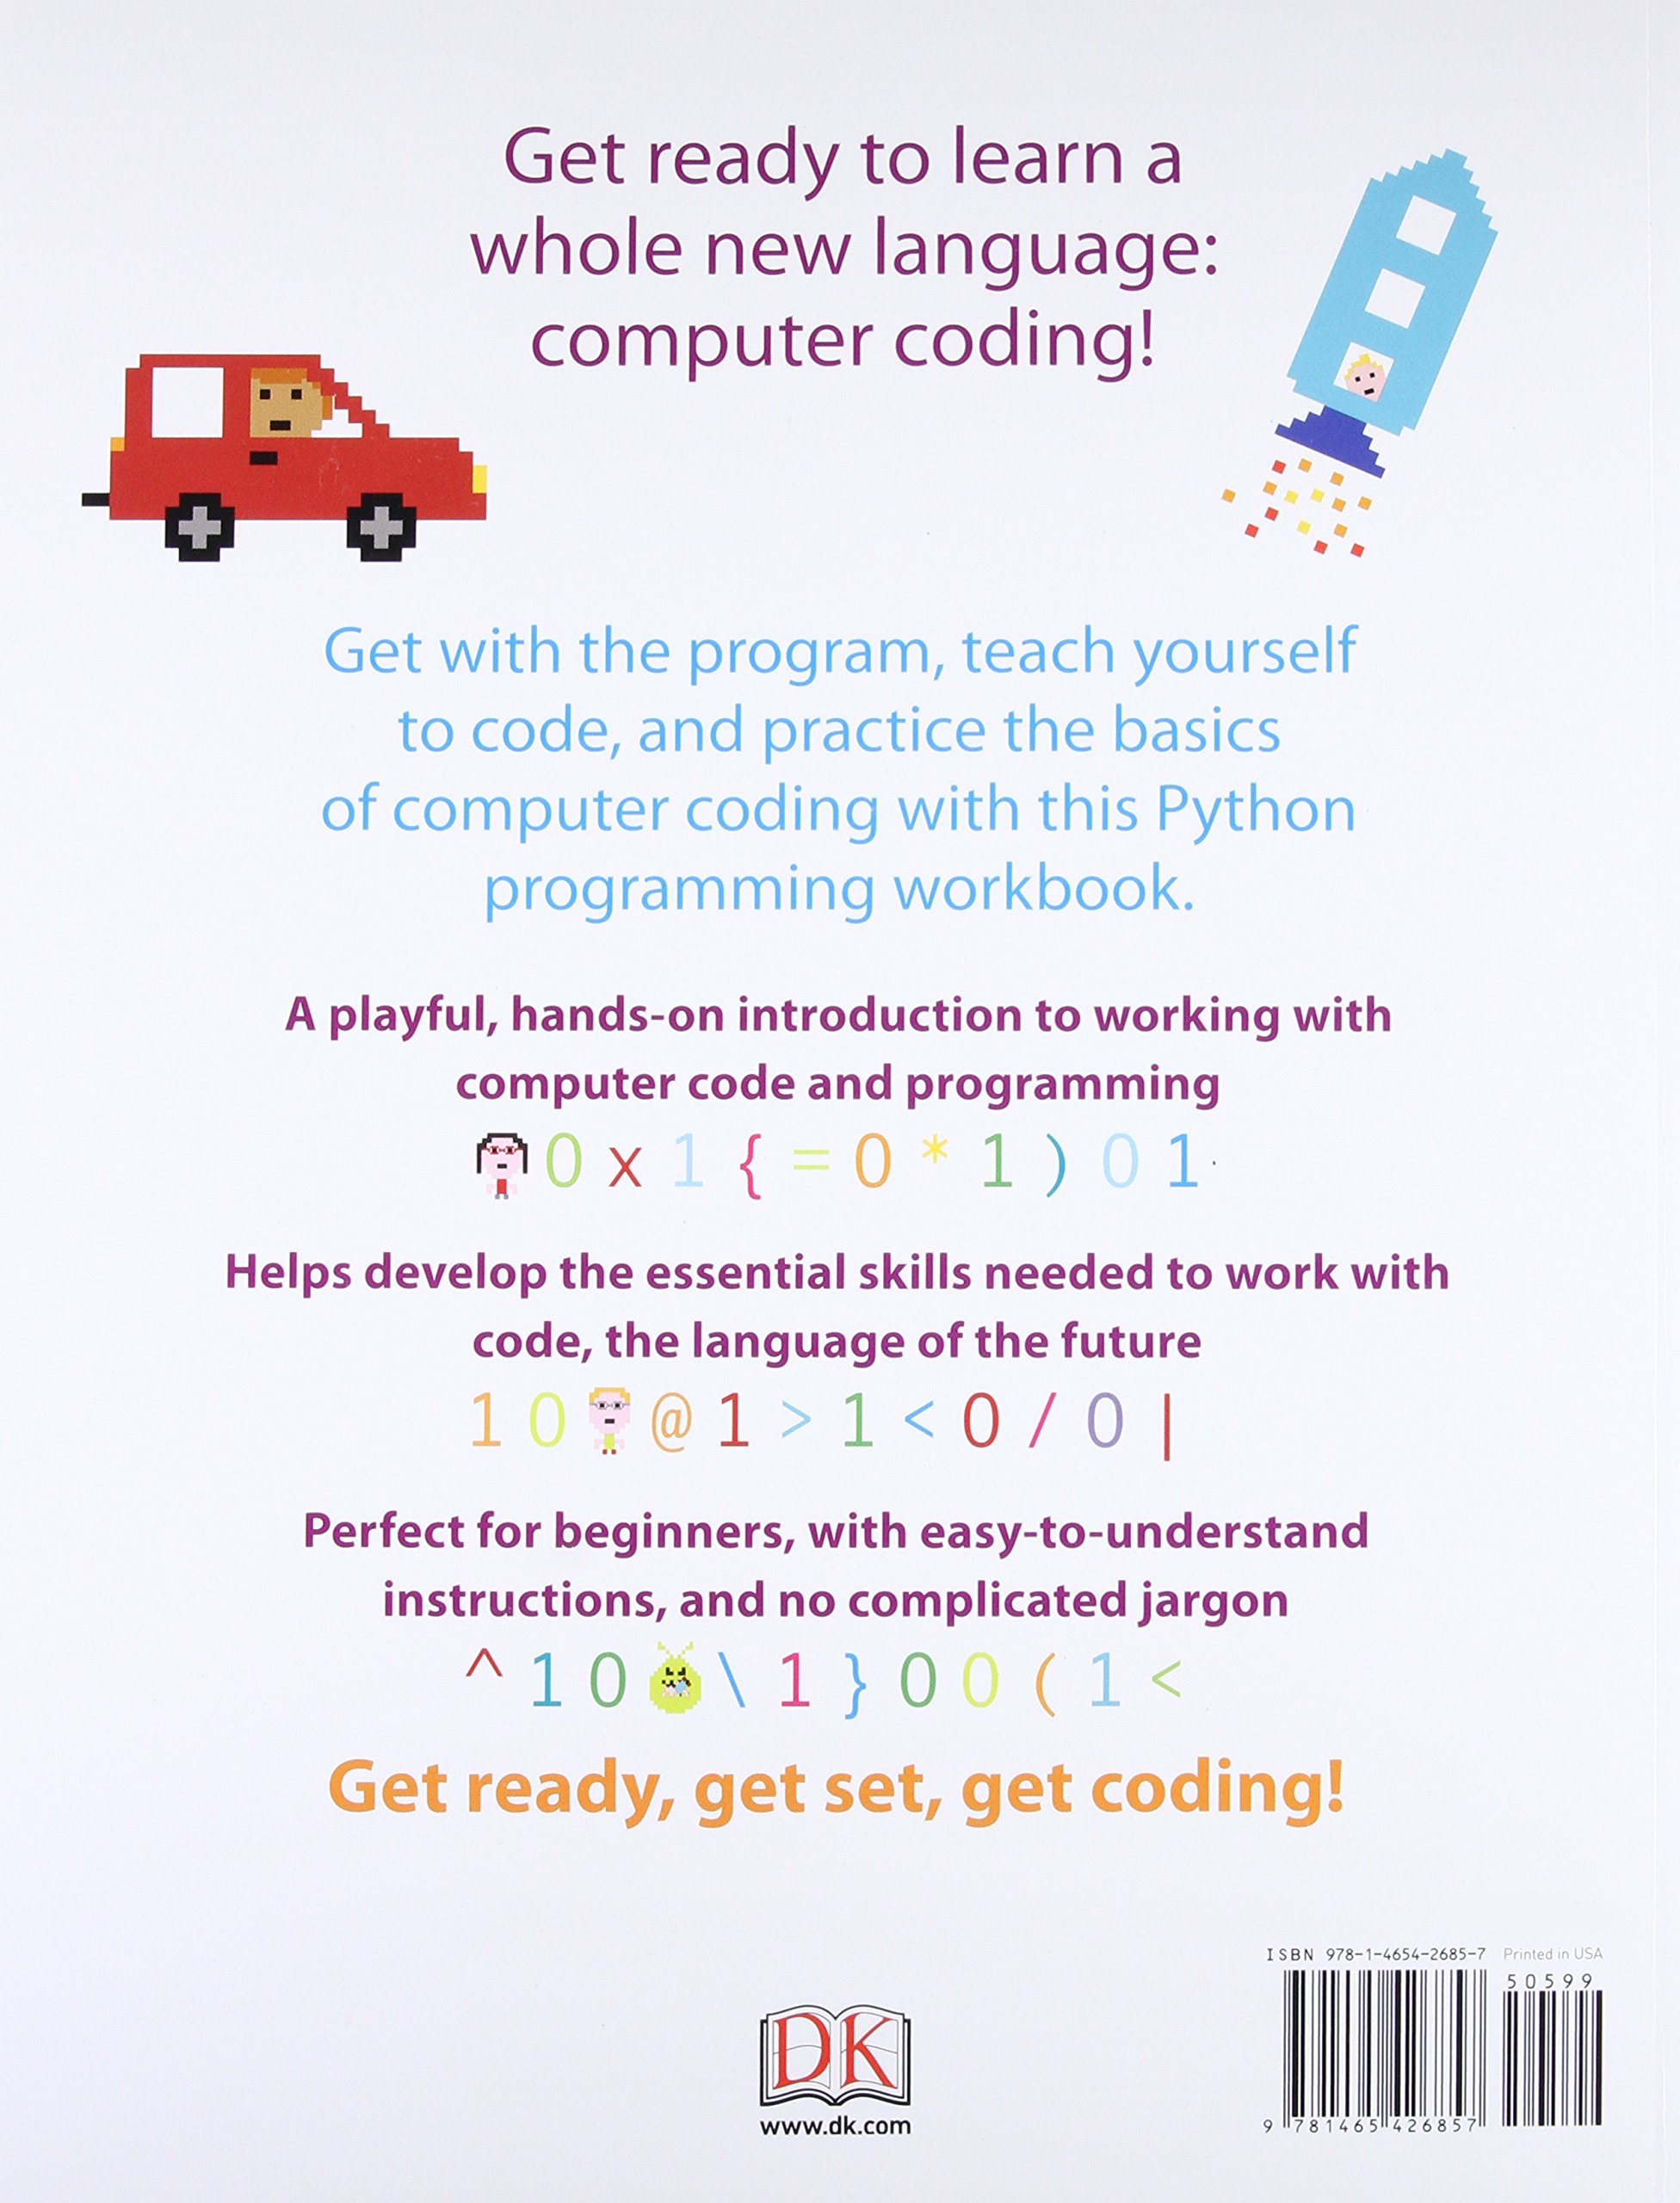 DK Workbooks: Computer Coding: An Introduction to Computer